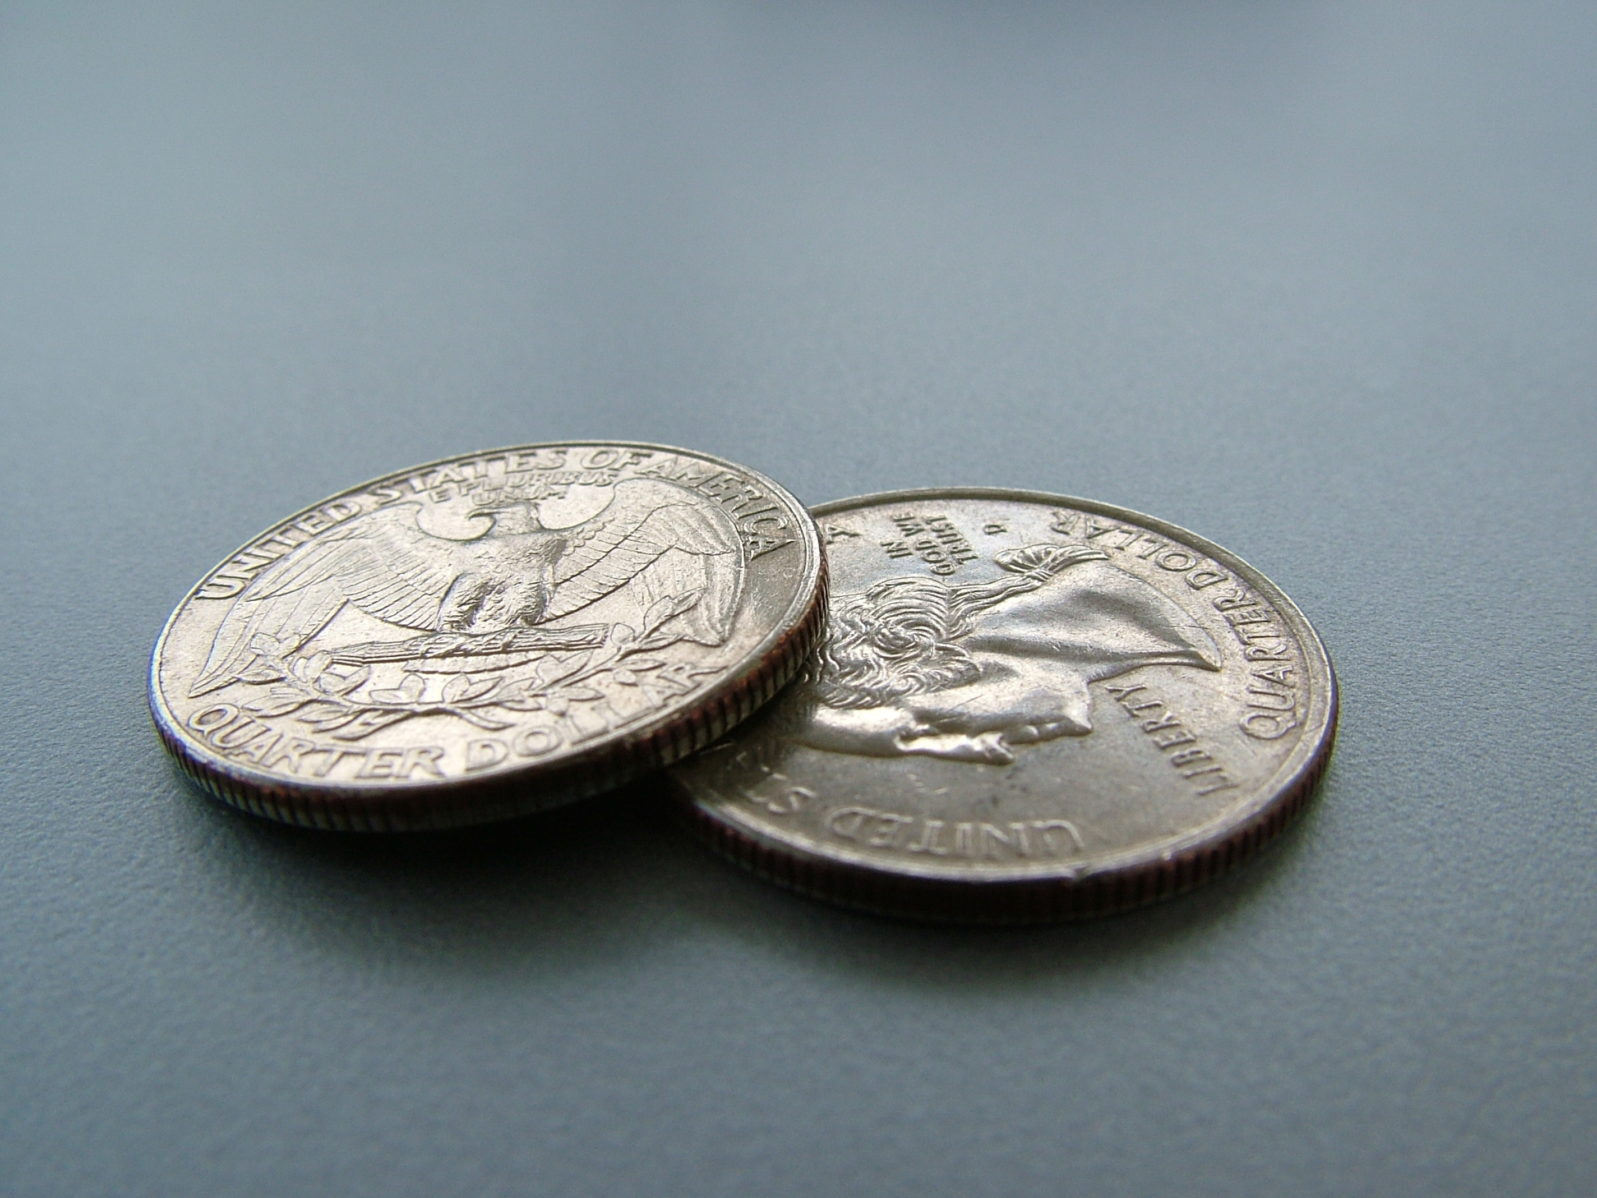 Coins on a gray table